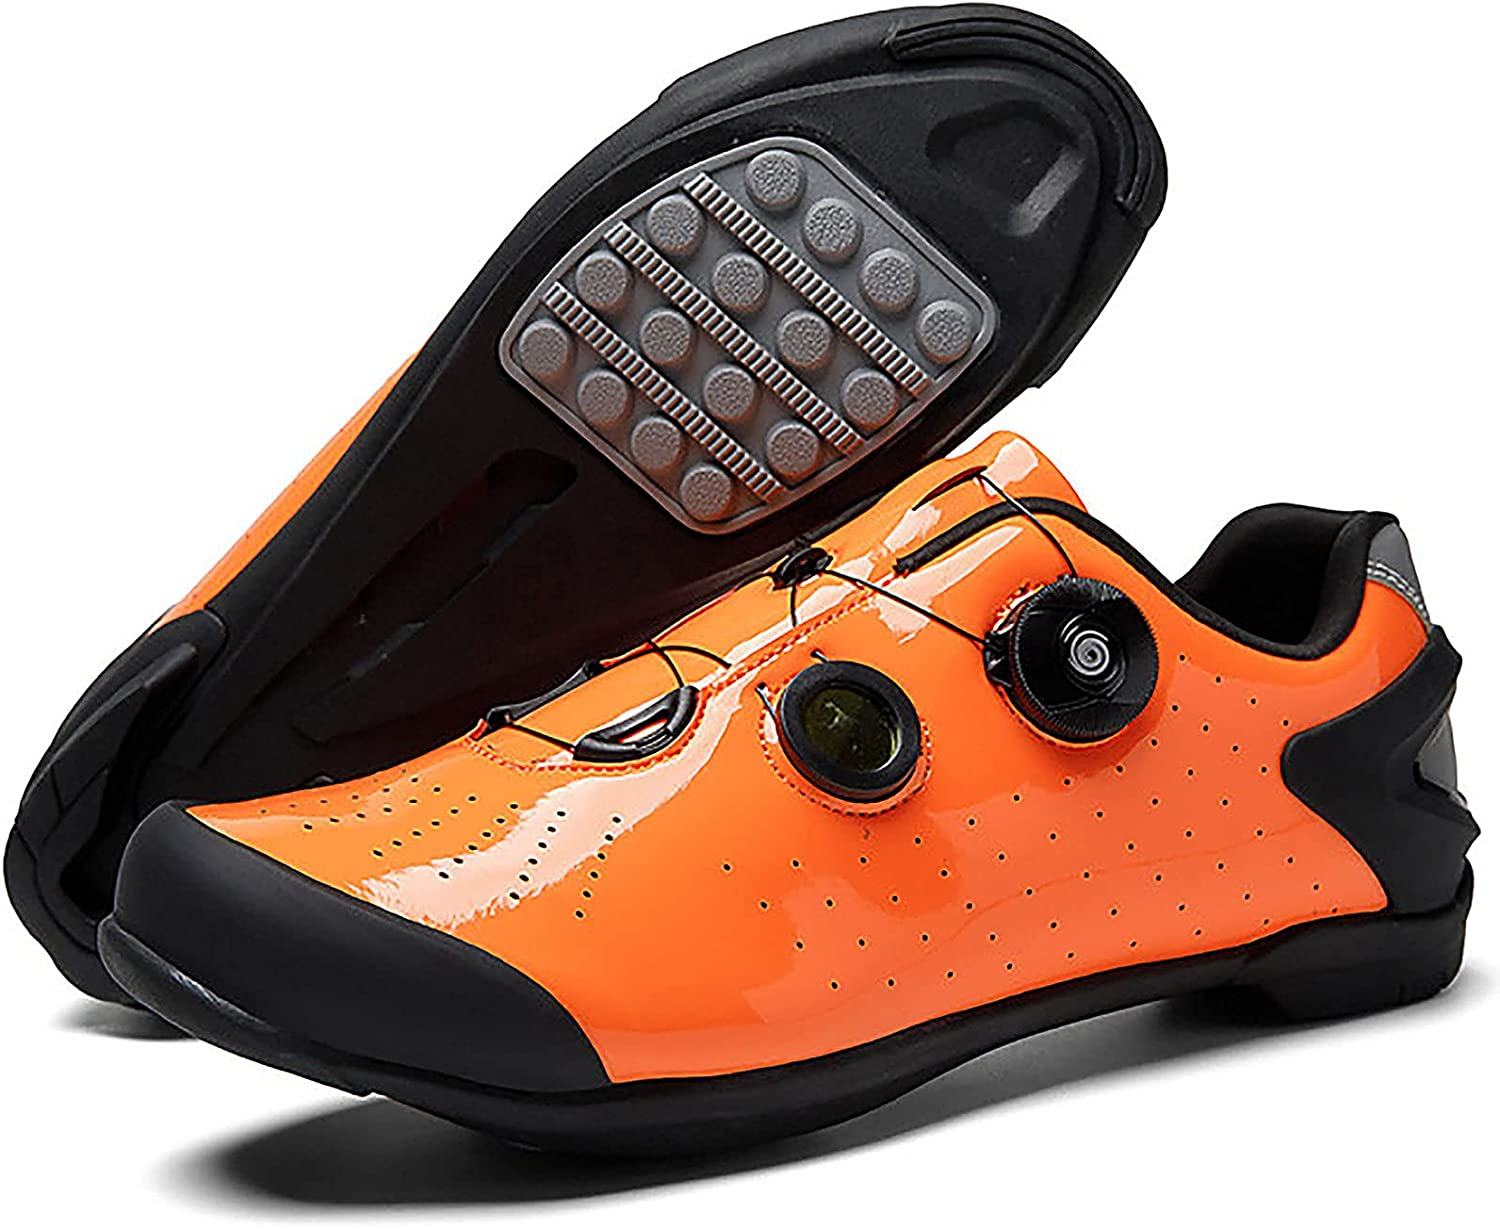 DSMGLRBGZ Cycling Shoes 36-46 Front Absorption Detroit Mall Ranking TOP13 Brea Shock Foot